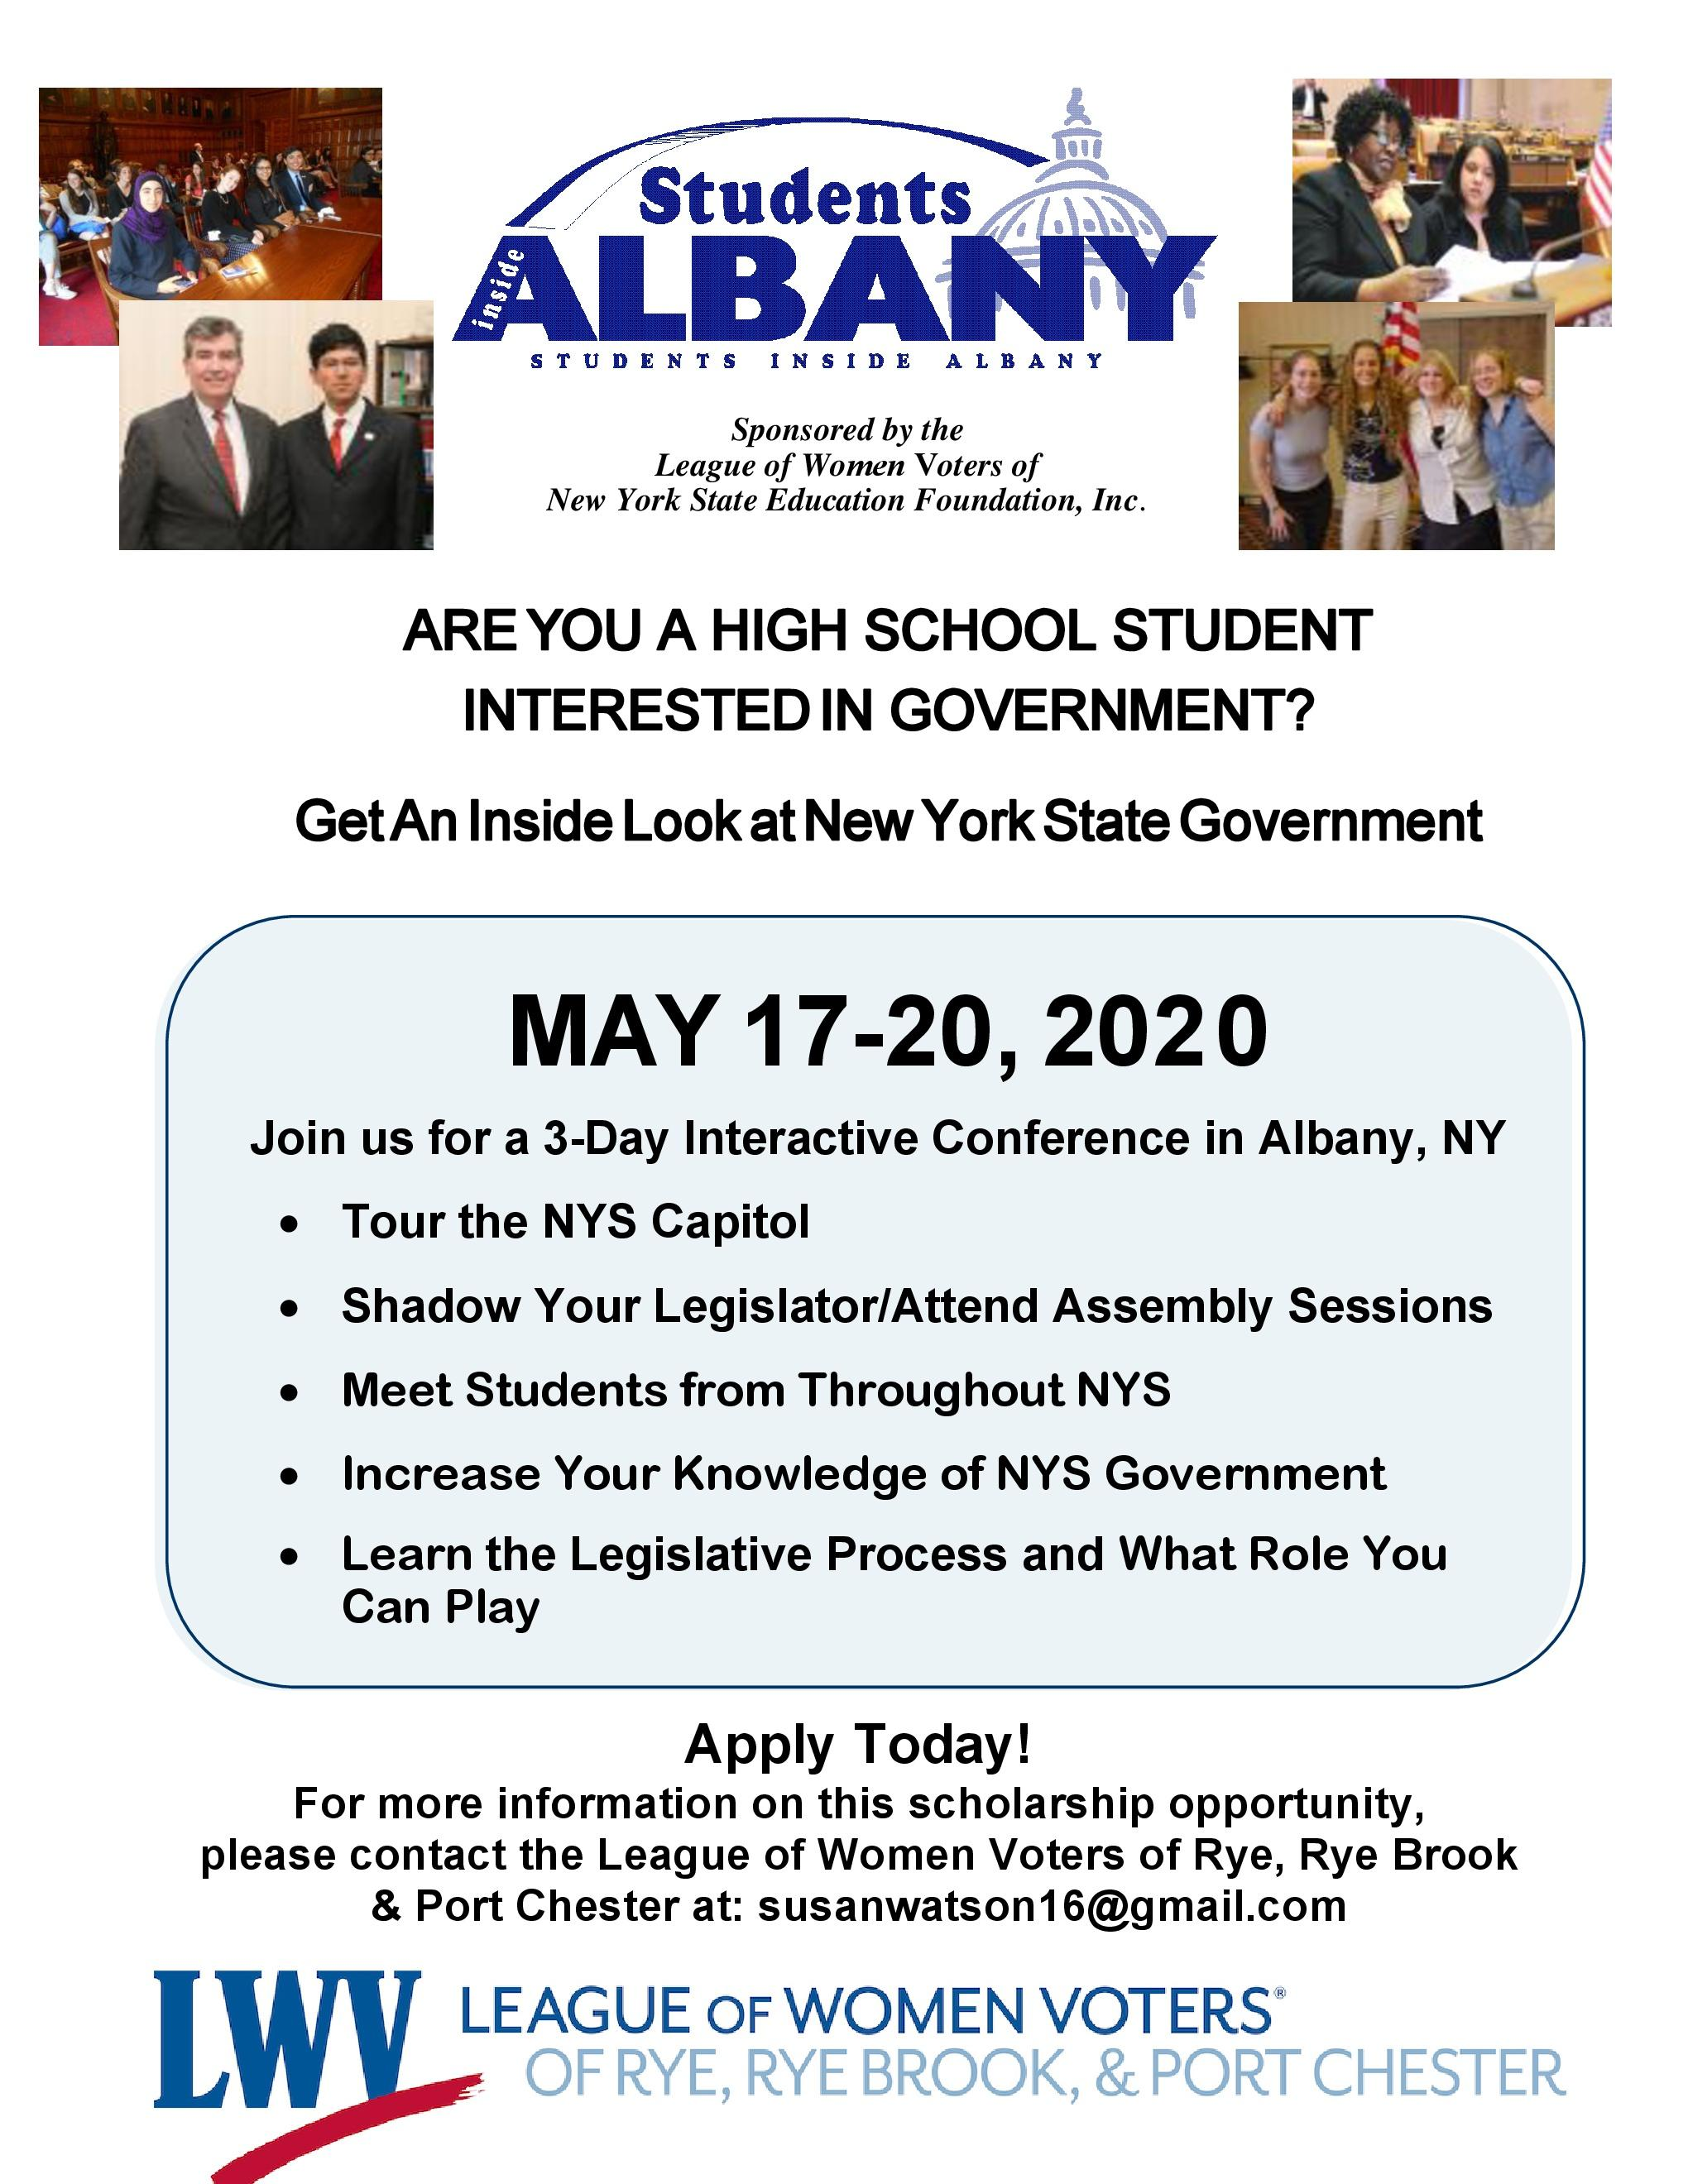 Students in Albany 2020